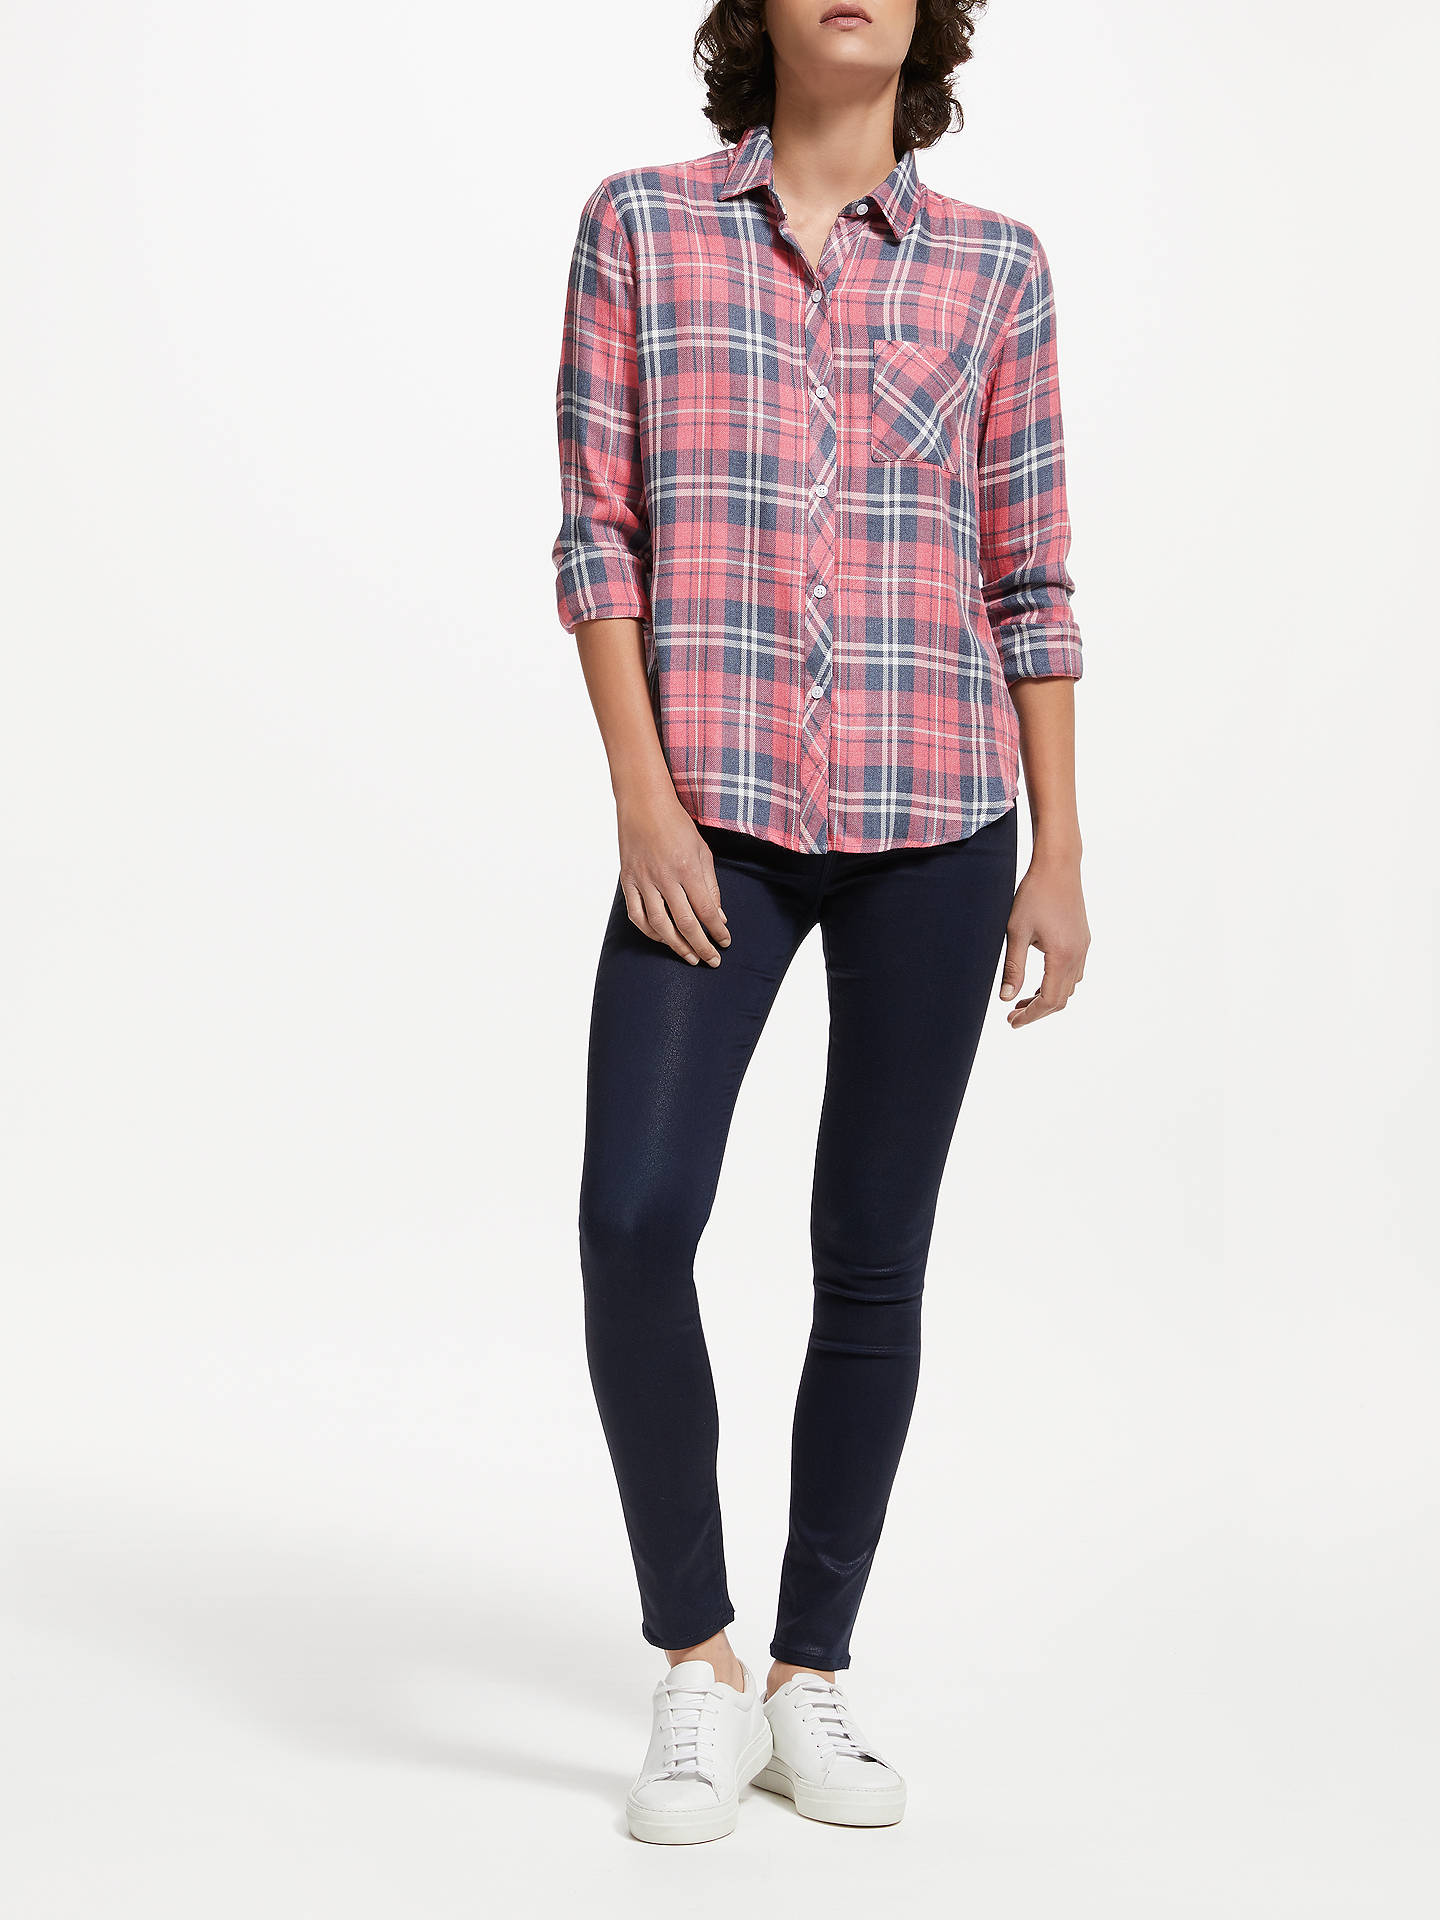 BuyRails Hunter Plaid Shirt, Indigo Raspberry, XS Online at johnlewis.com